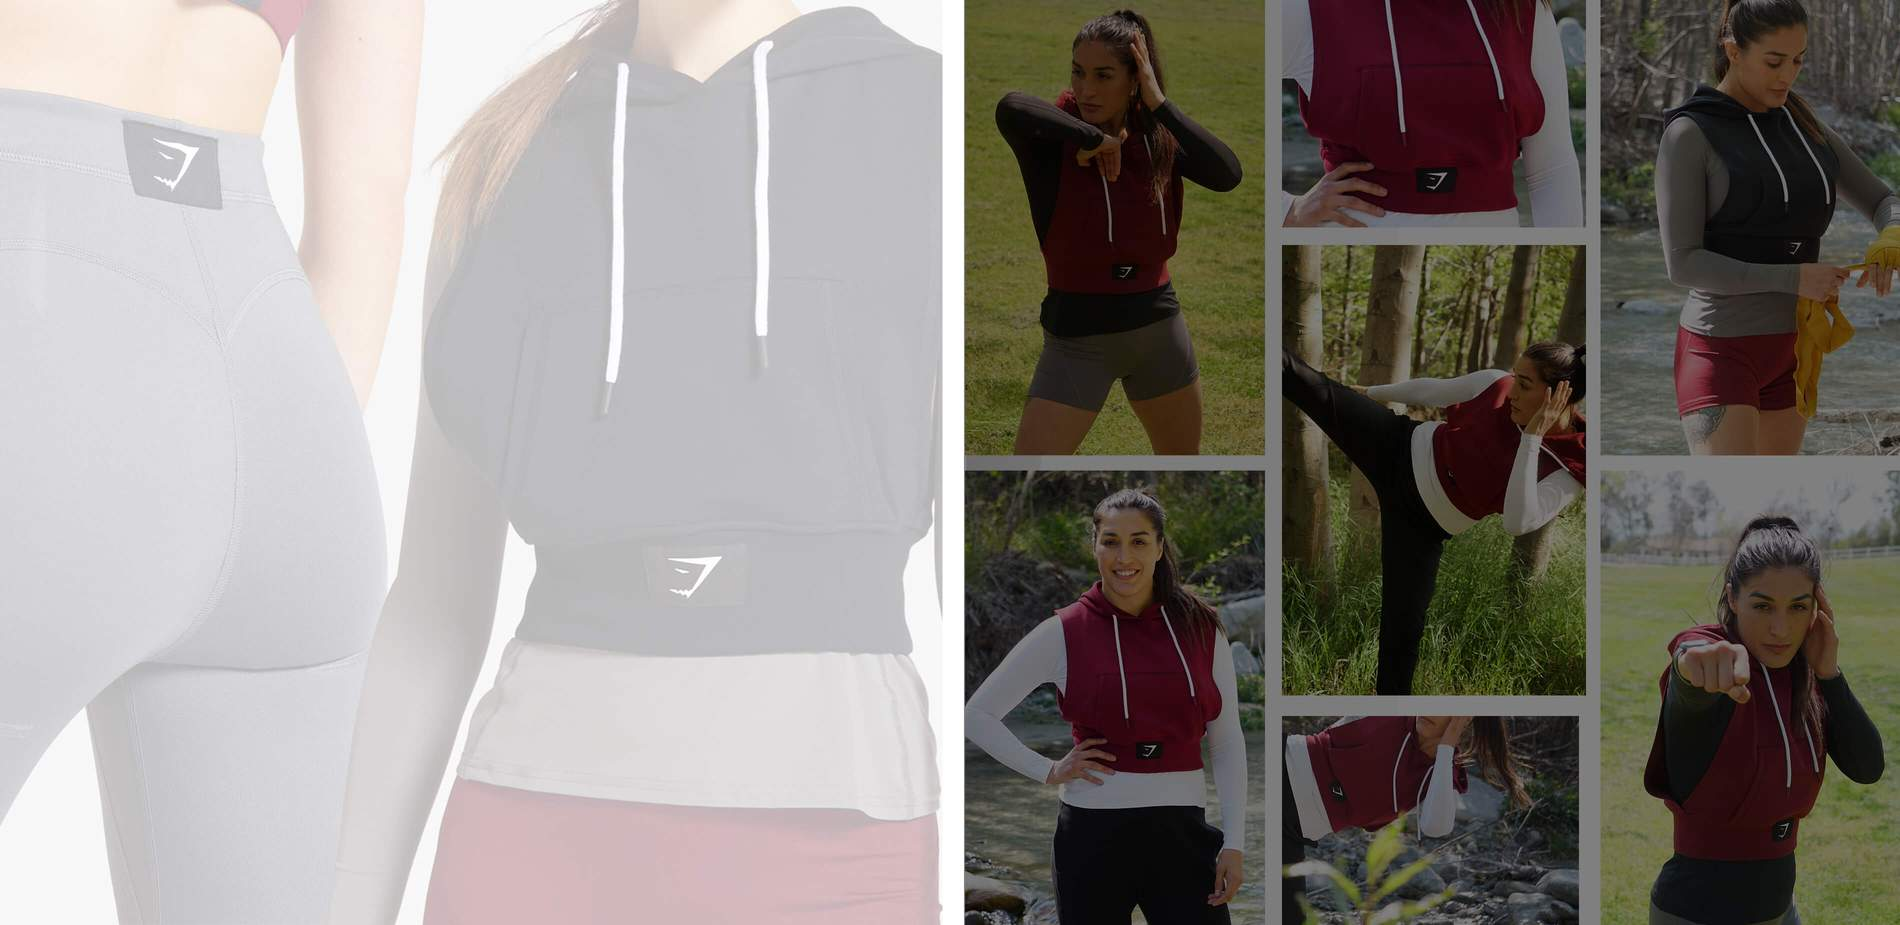 A collage of a Gymshark Athlete wearing the Combat collection in a grid format, with product imagery supporting to the left.